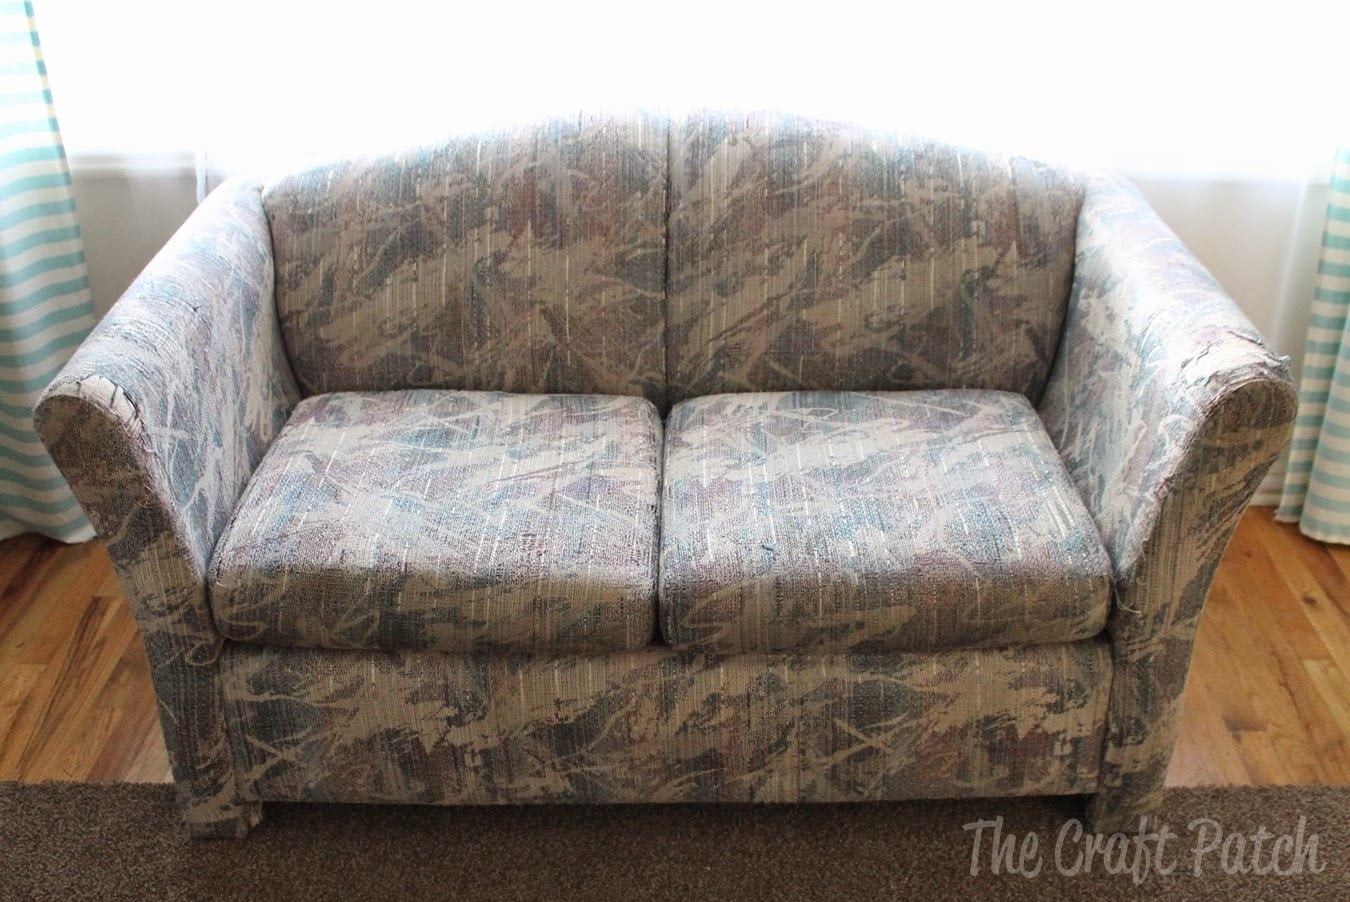 My Parents Found An Old, Ugly Couch For Free And Since We Had Nothing, We  Took It Home. Thereu0027s A Reason It Was Free, People. Look At It: